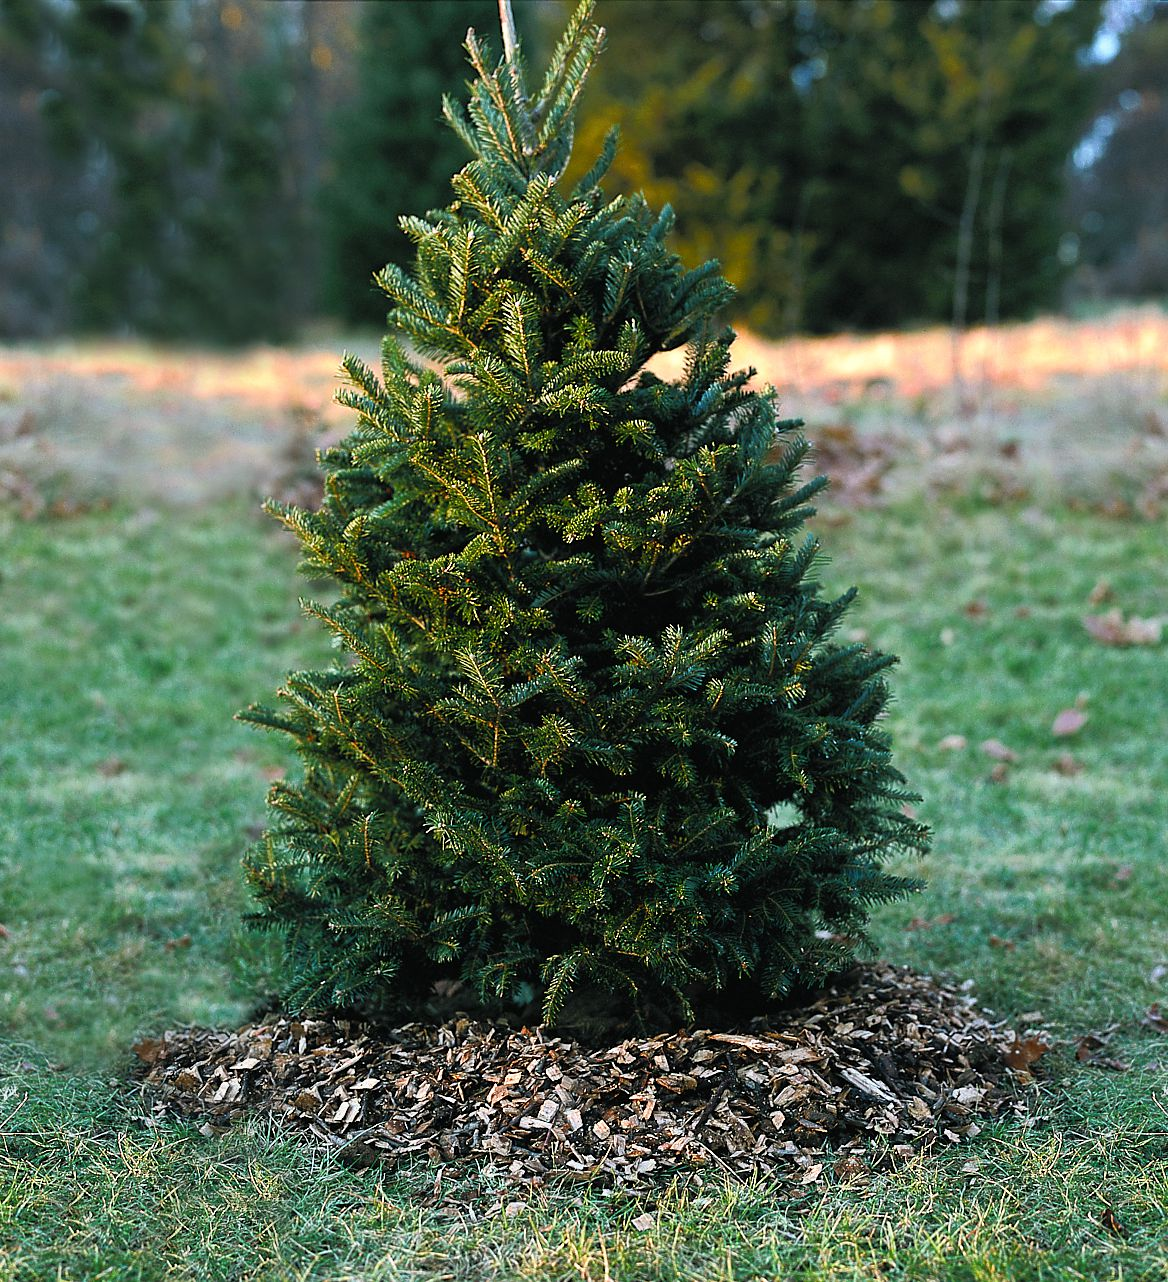 A live christmas tree planted in the backyard.